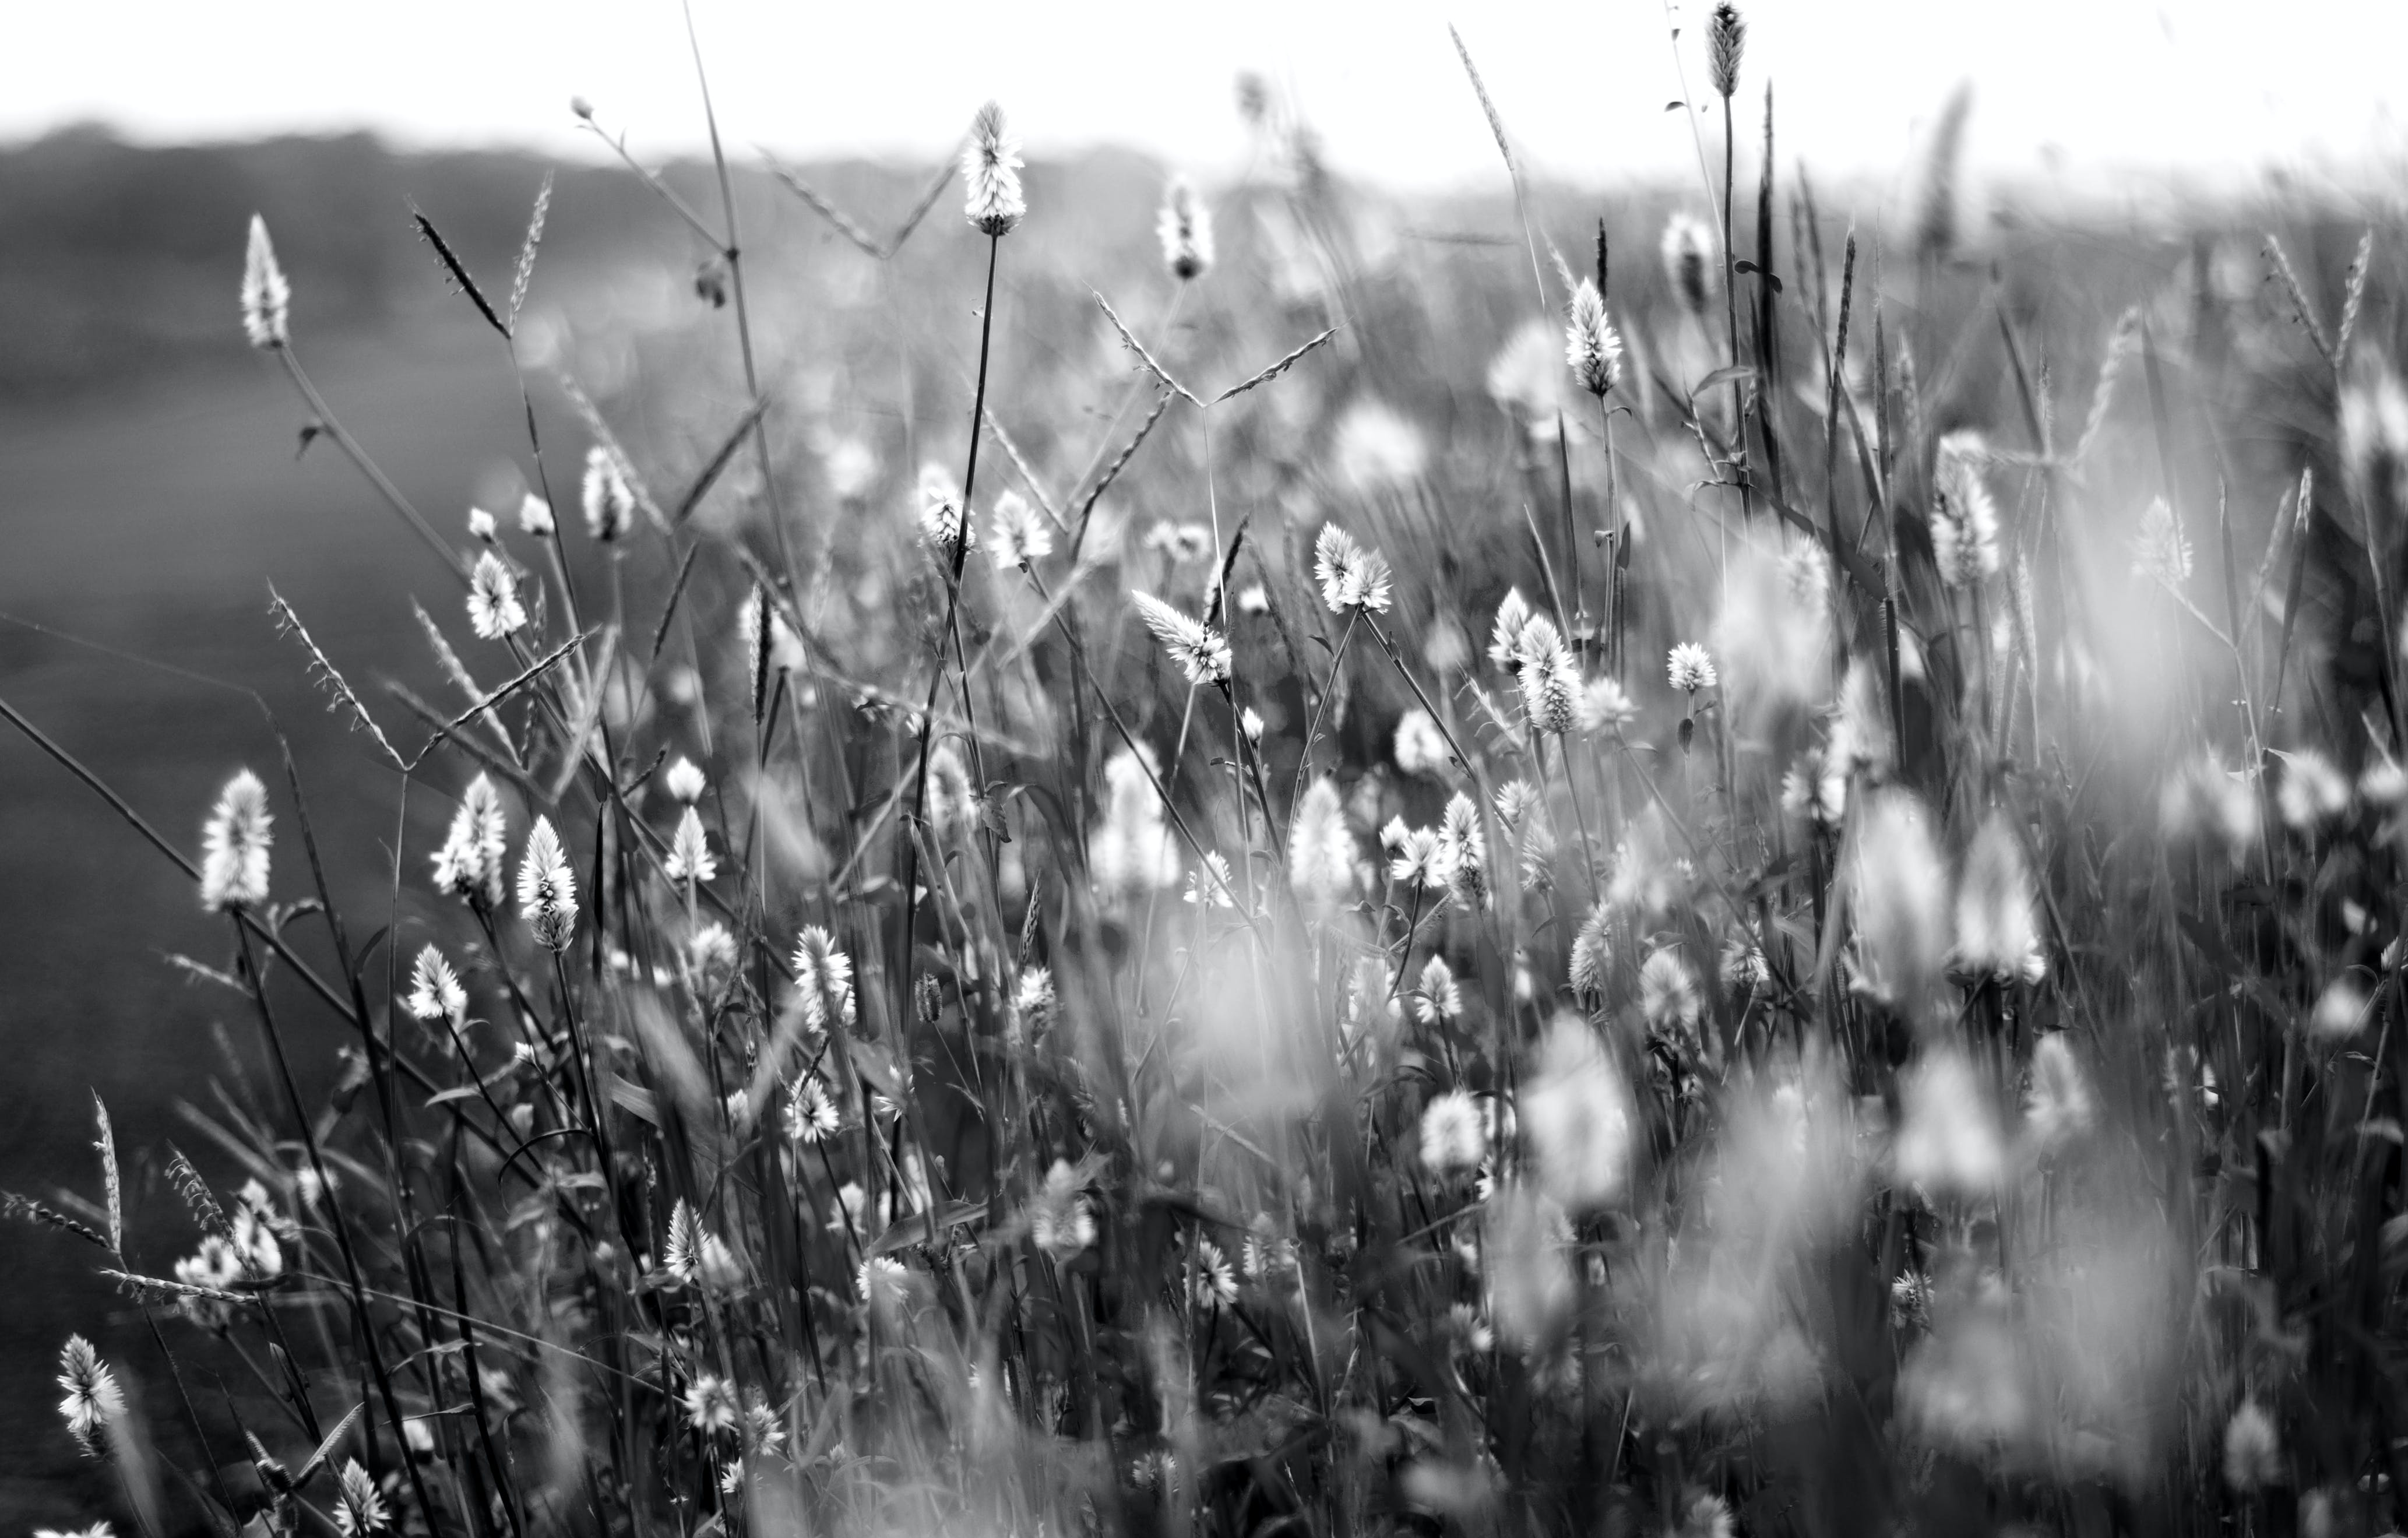 Grayscale Photography of Flower Field